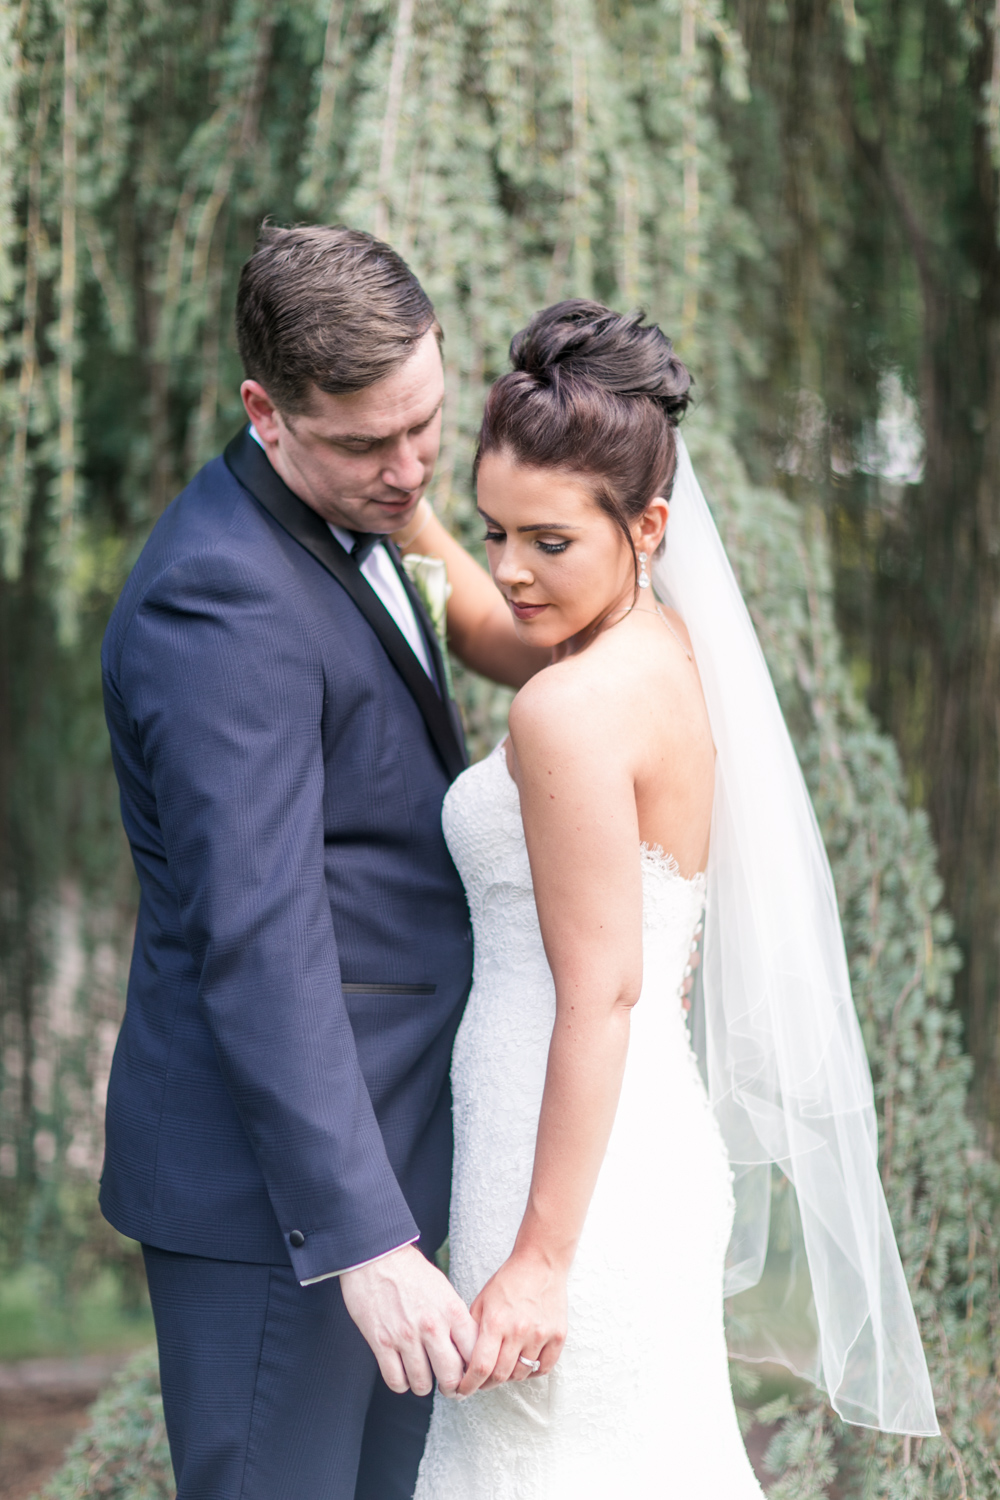 bride and groom holding hands with a willow tree in the background while both looking down posing on the grounds of slieve russell in ireland